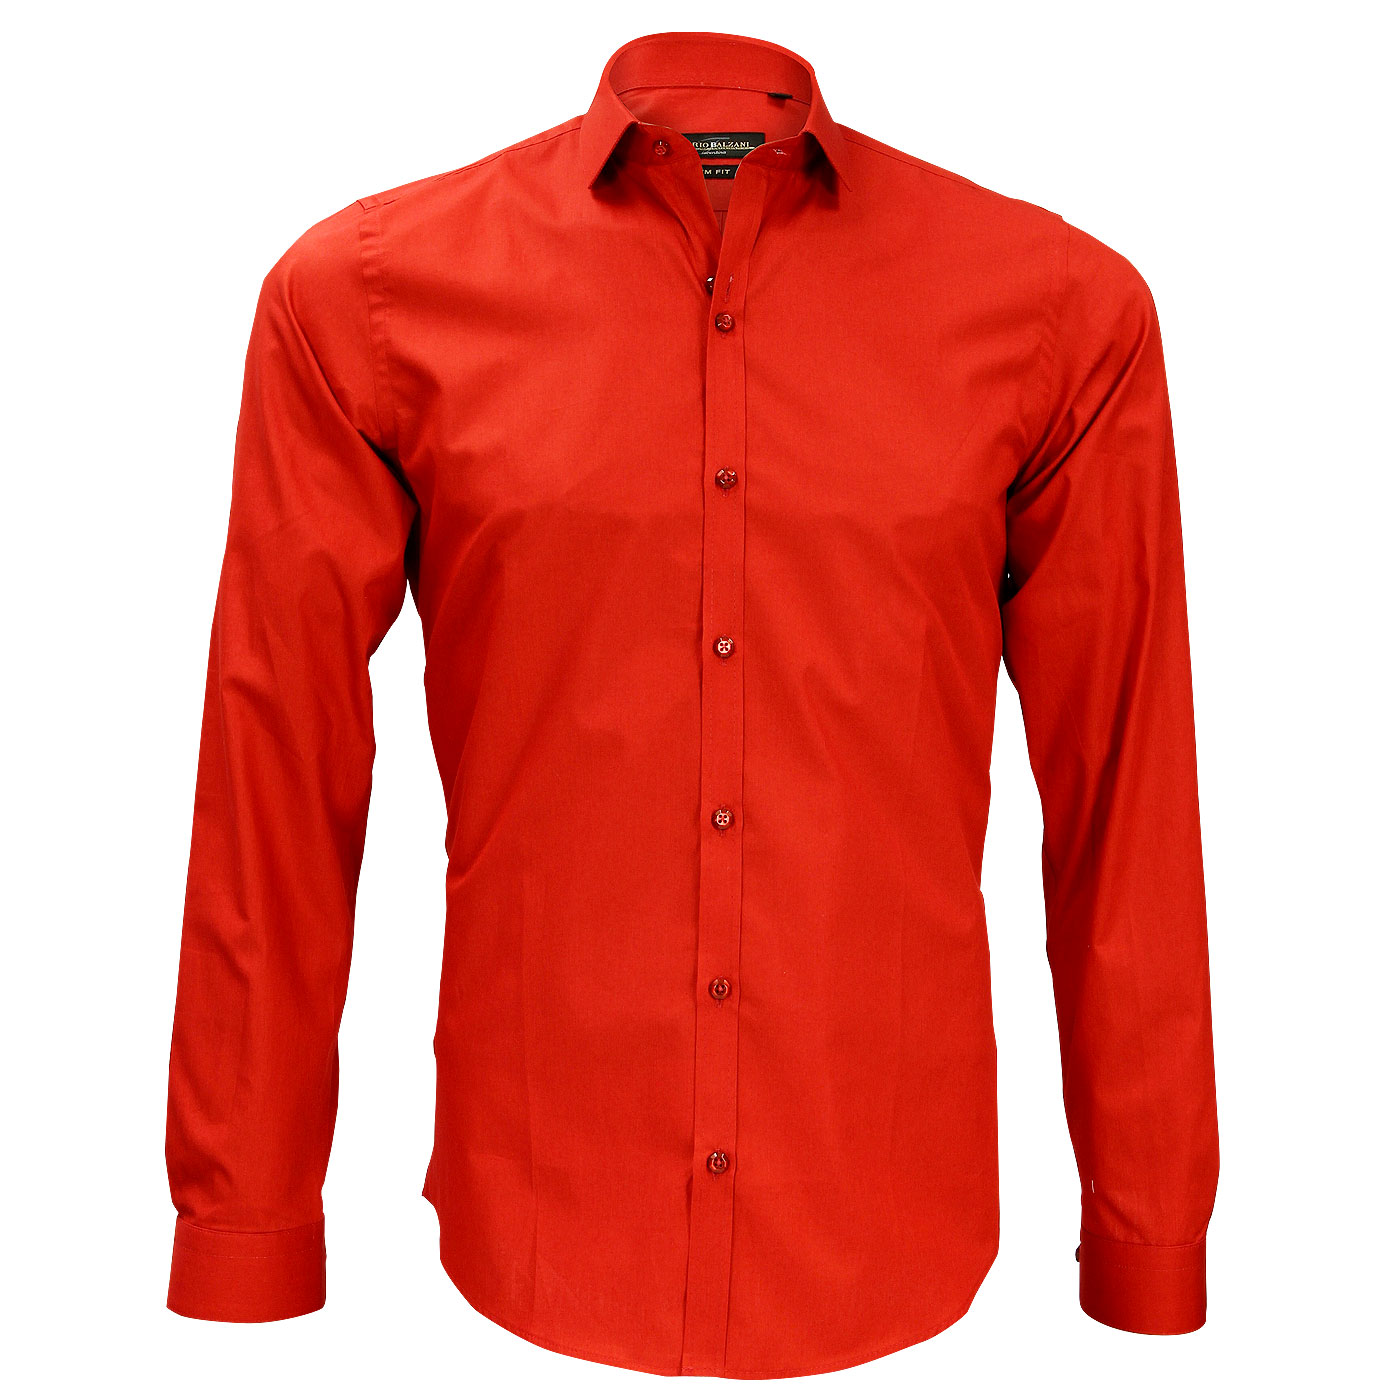 Choosing well your Shirt Color: here is the guide Tip